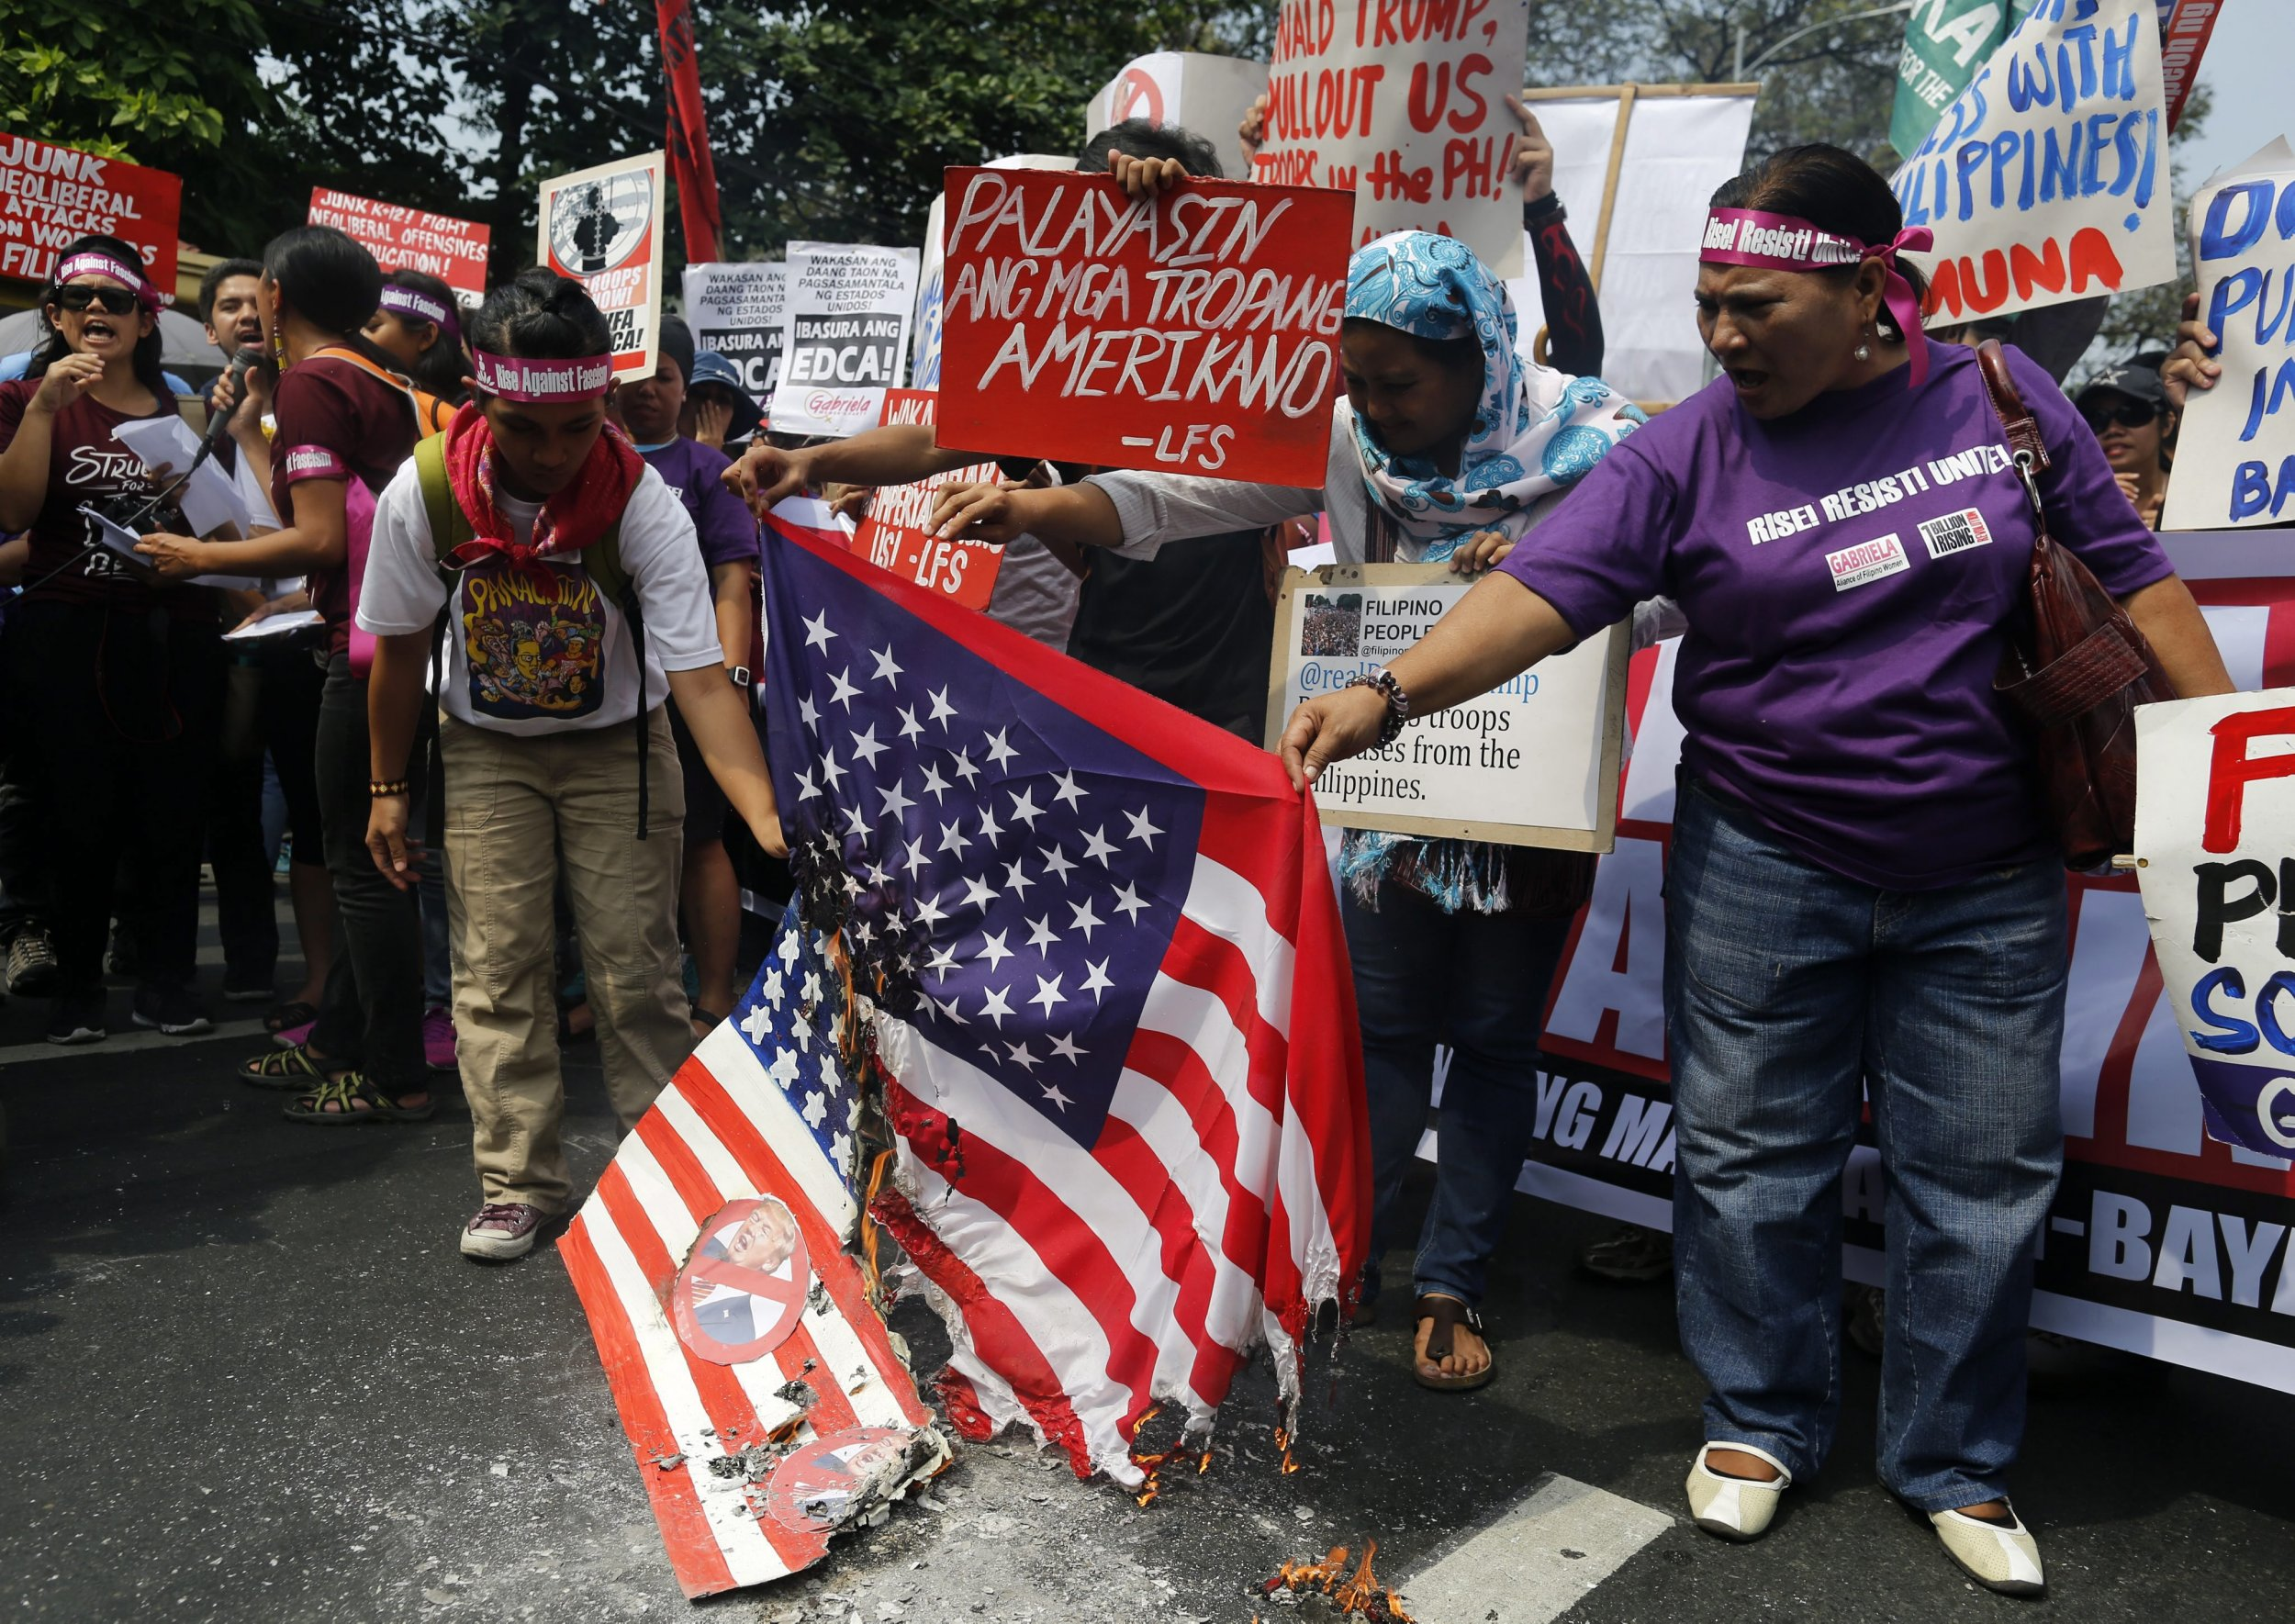 epa05733196 Filipinos and Fil-Americans burn a US flag during a protest rally in front of the US embassy in Manila, Philippines, 20 January 2017, on the eve of President-elect Donald Trump's inauguration as the 45th president of the United States. Filipinos and Filipino-Americans held a protest in front of the US embassy in Manila to denounce the new US president. EPA/FRANCIS R. MALASIG